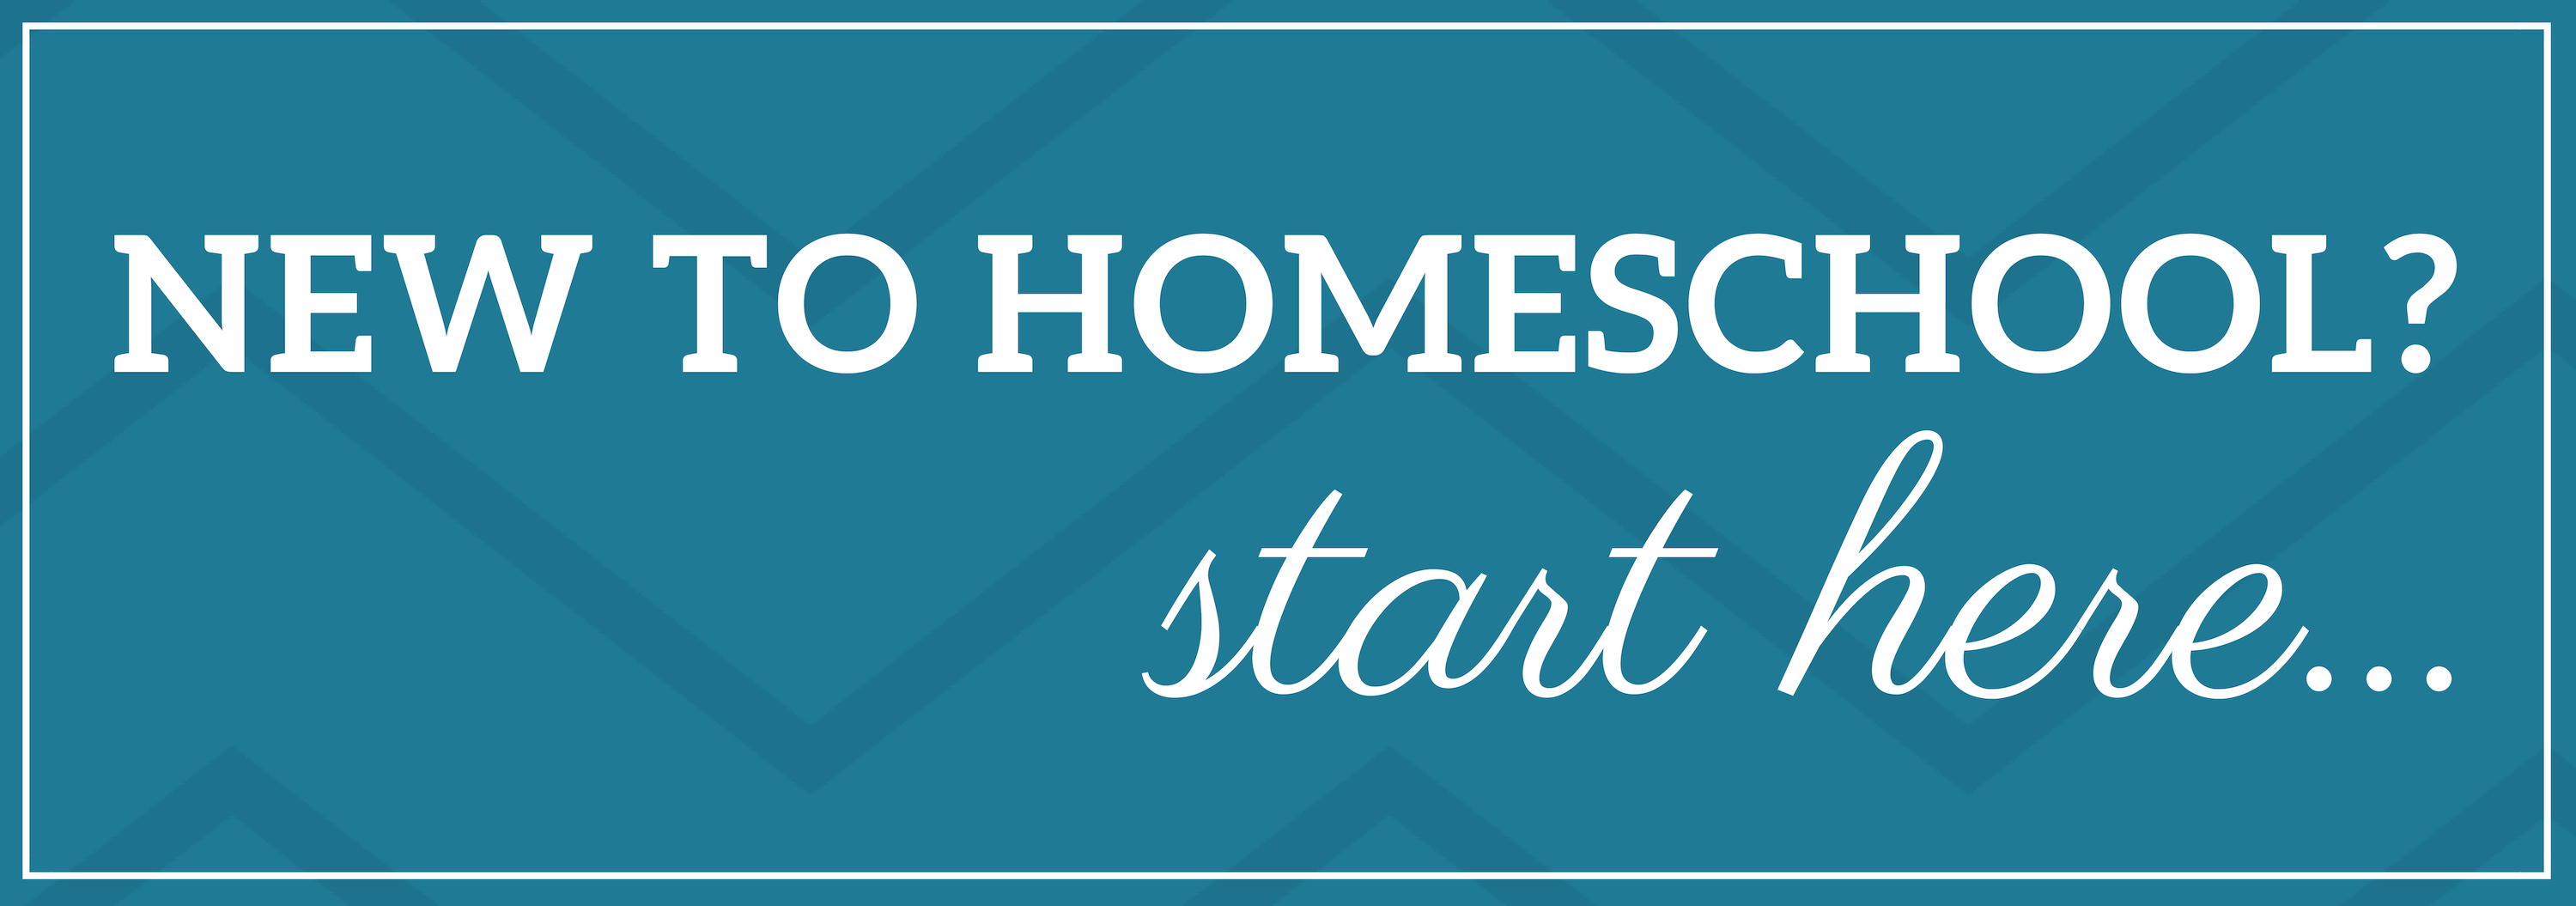 New to homeschooling